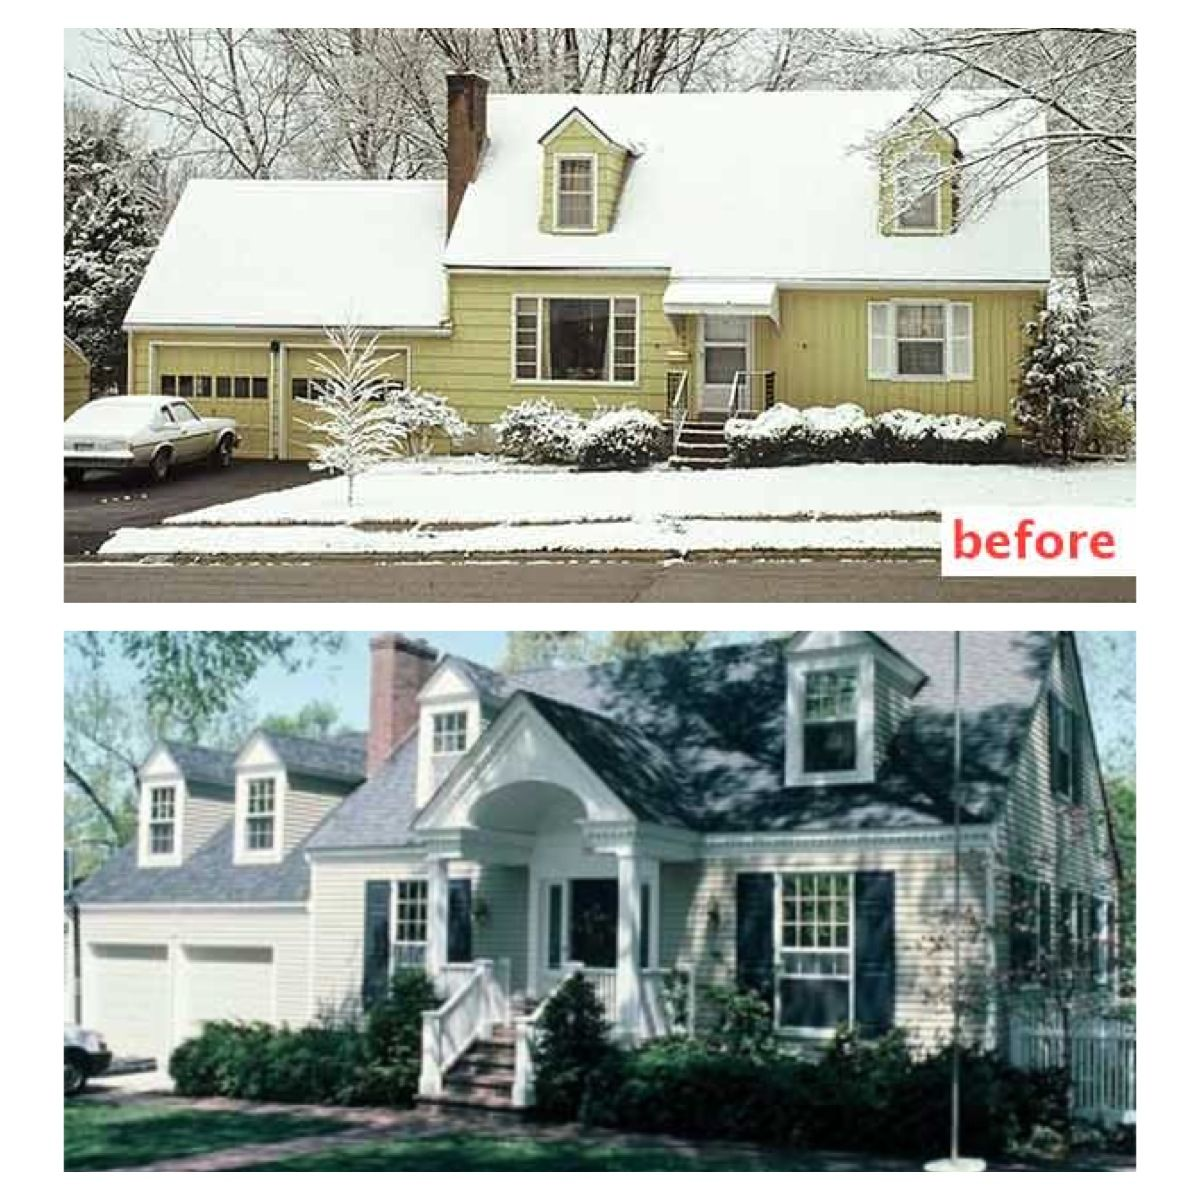 24840235417385696 further Cottage Gardens likewise Landscaping For Greater Curb Appeal as well Smith kitchen likewise Before And After Curb Appeal Photos. on small house curb appeal